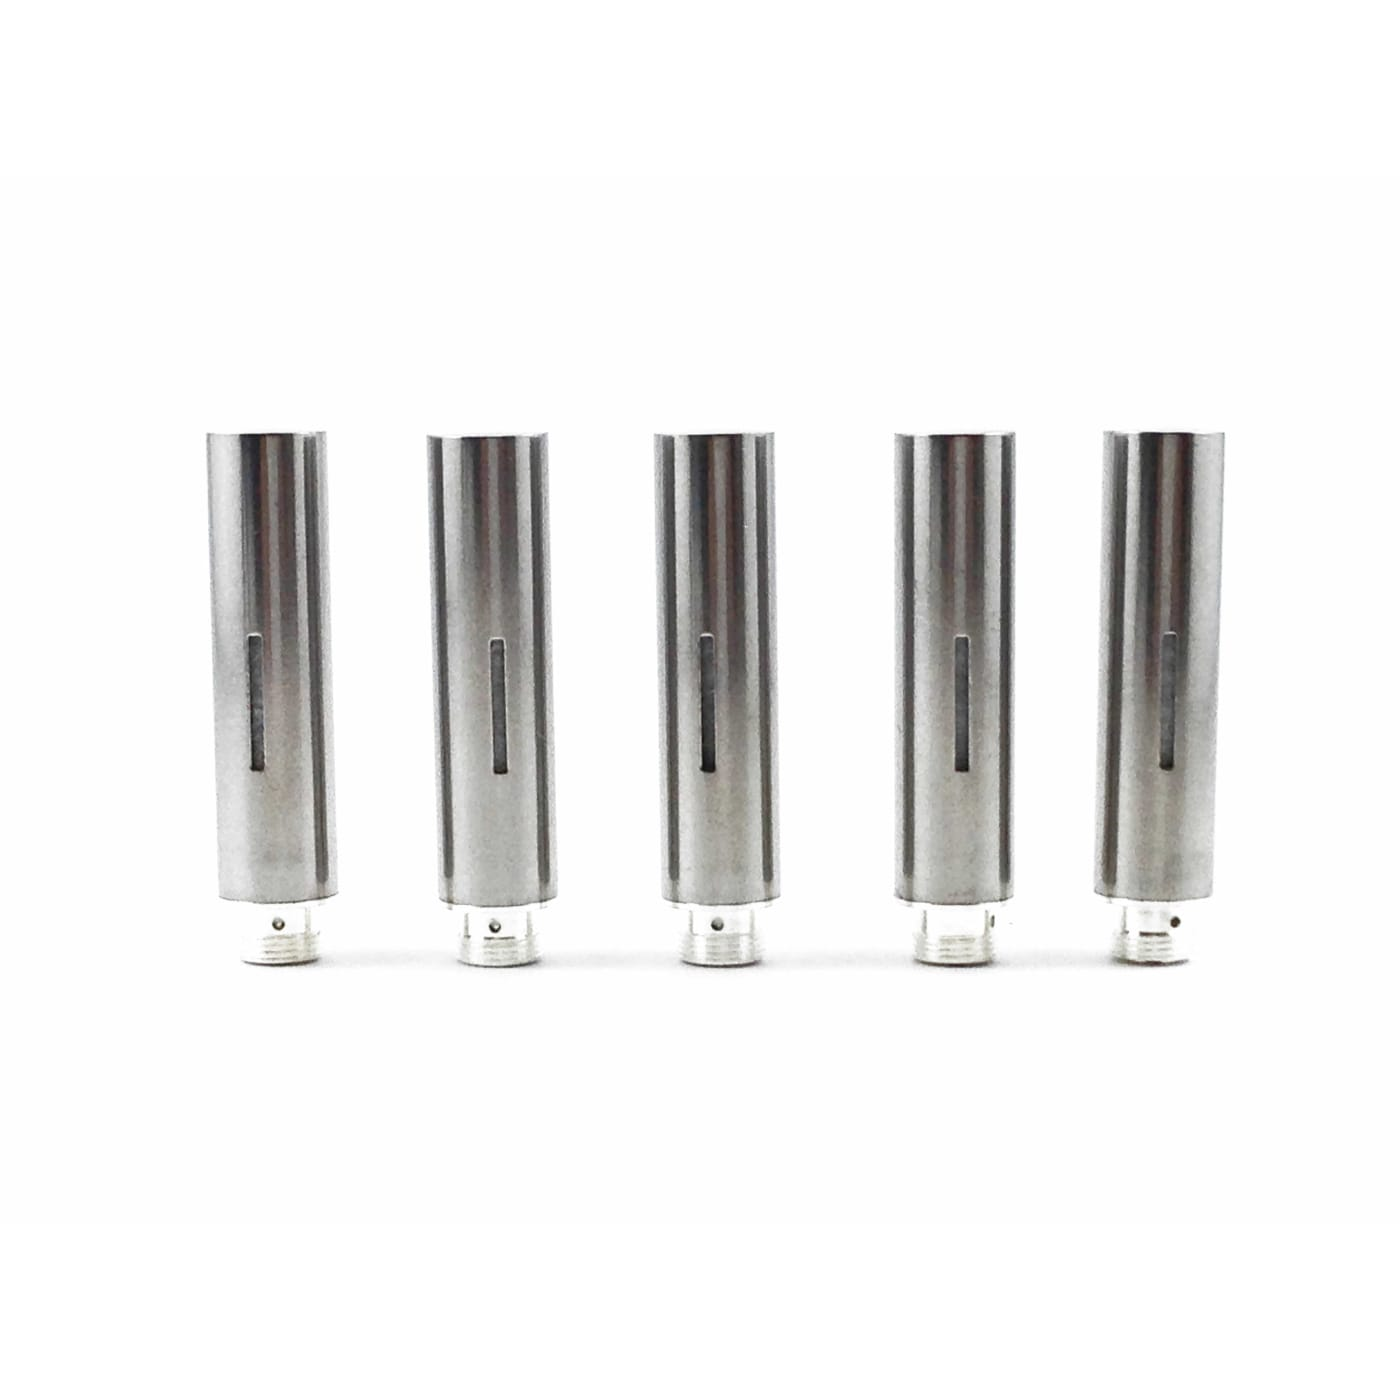 Boge 510 Slotted Cartomizer 5 Pack